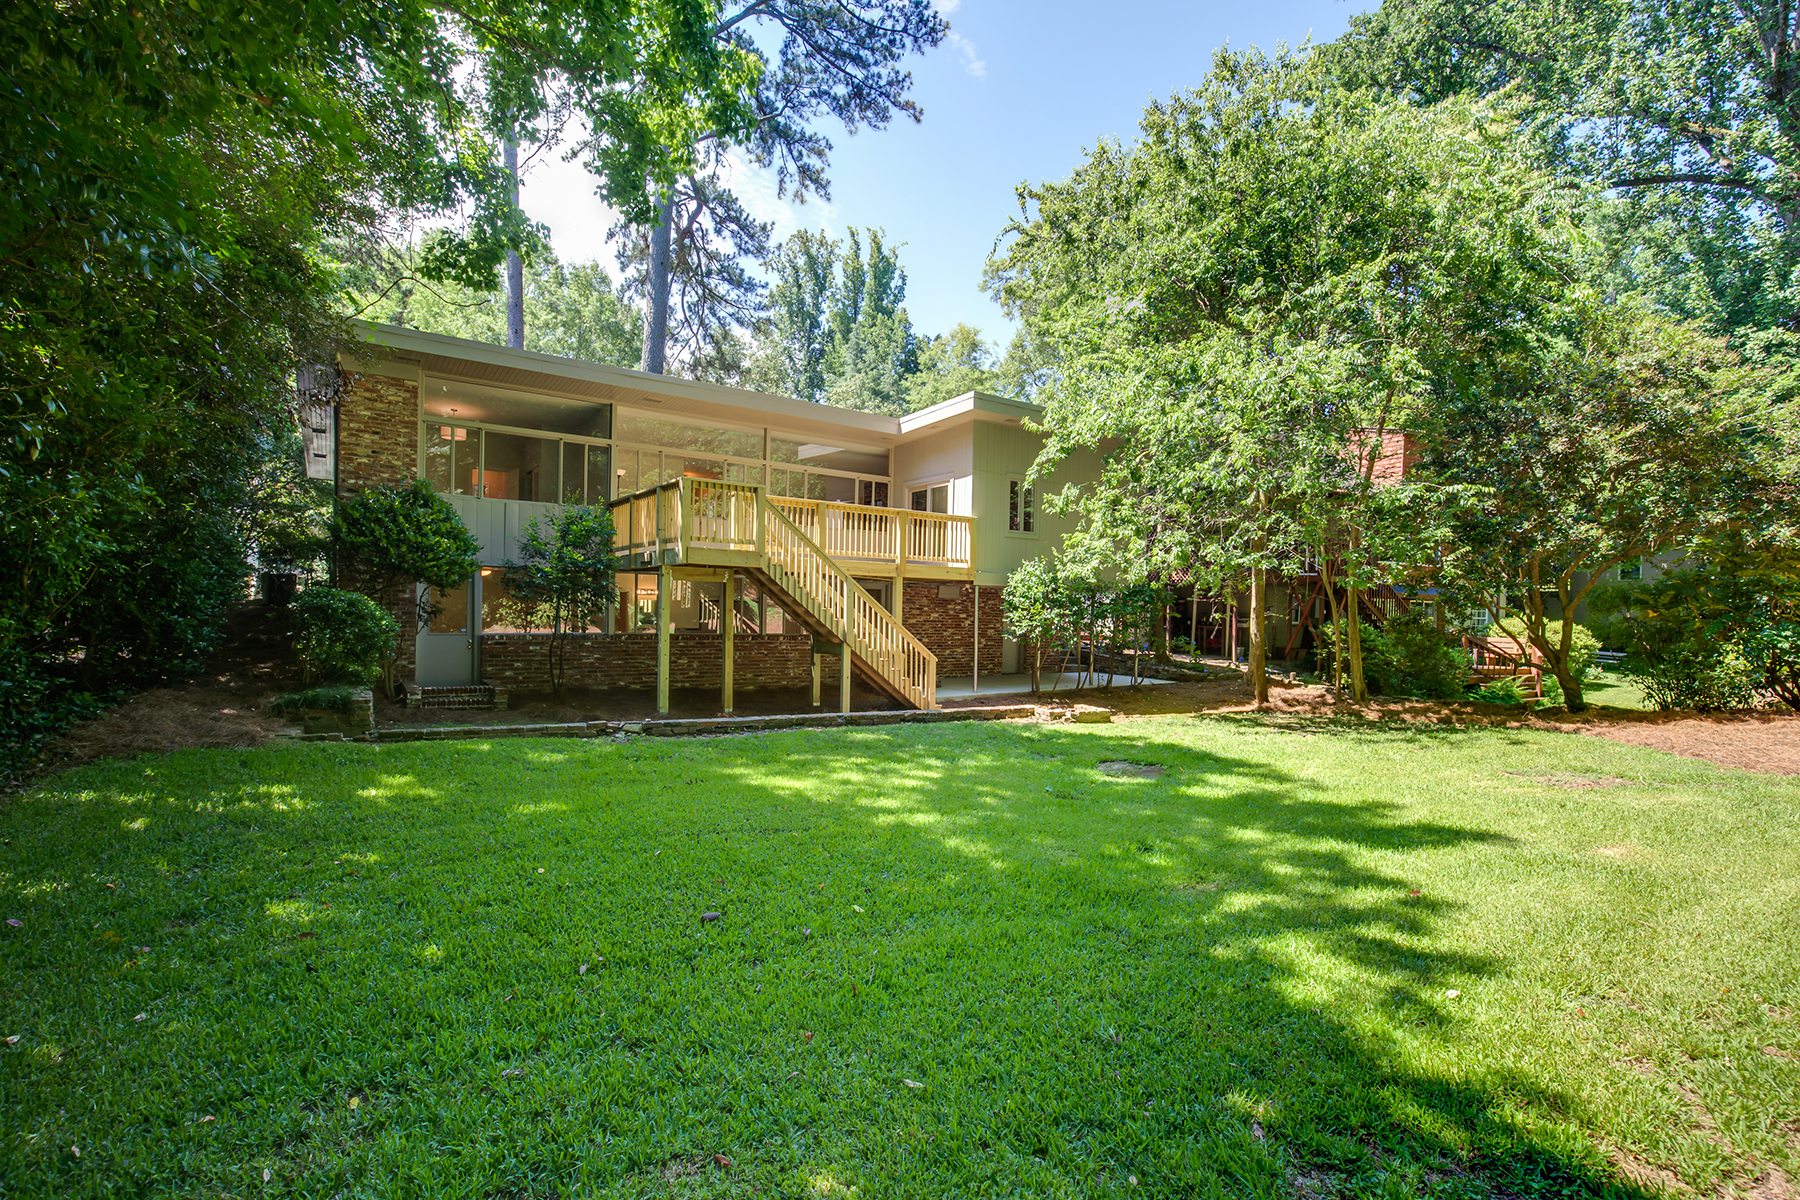 Single Family Home for Sale at Authentic Mid-Century Modern With Quiet, Private Setting in the Heart of Druid H 1364 Springdale Rd Atlanta, Georgia 30306 United States